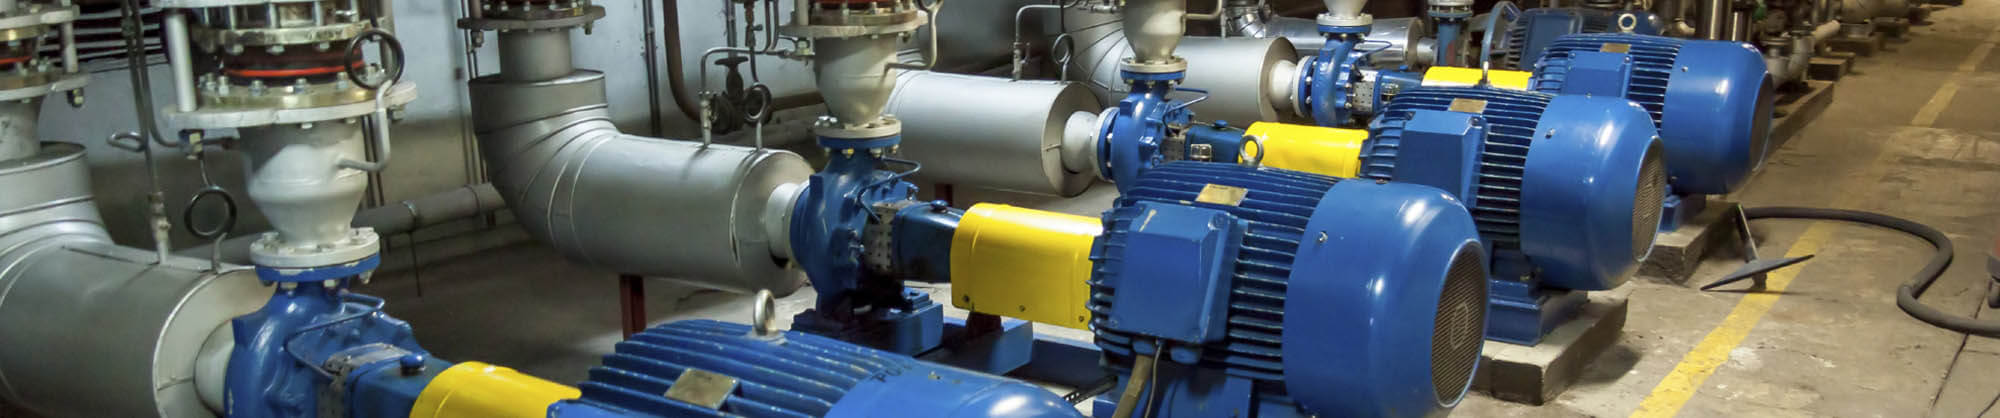 Industrial Pump Service, Repair & Distribution